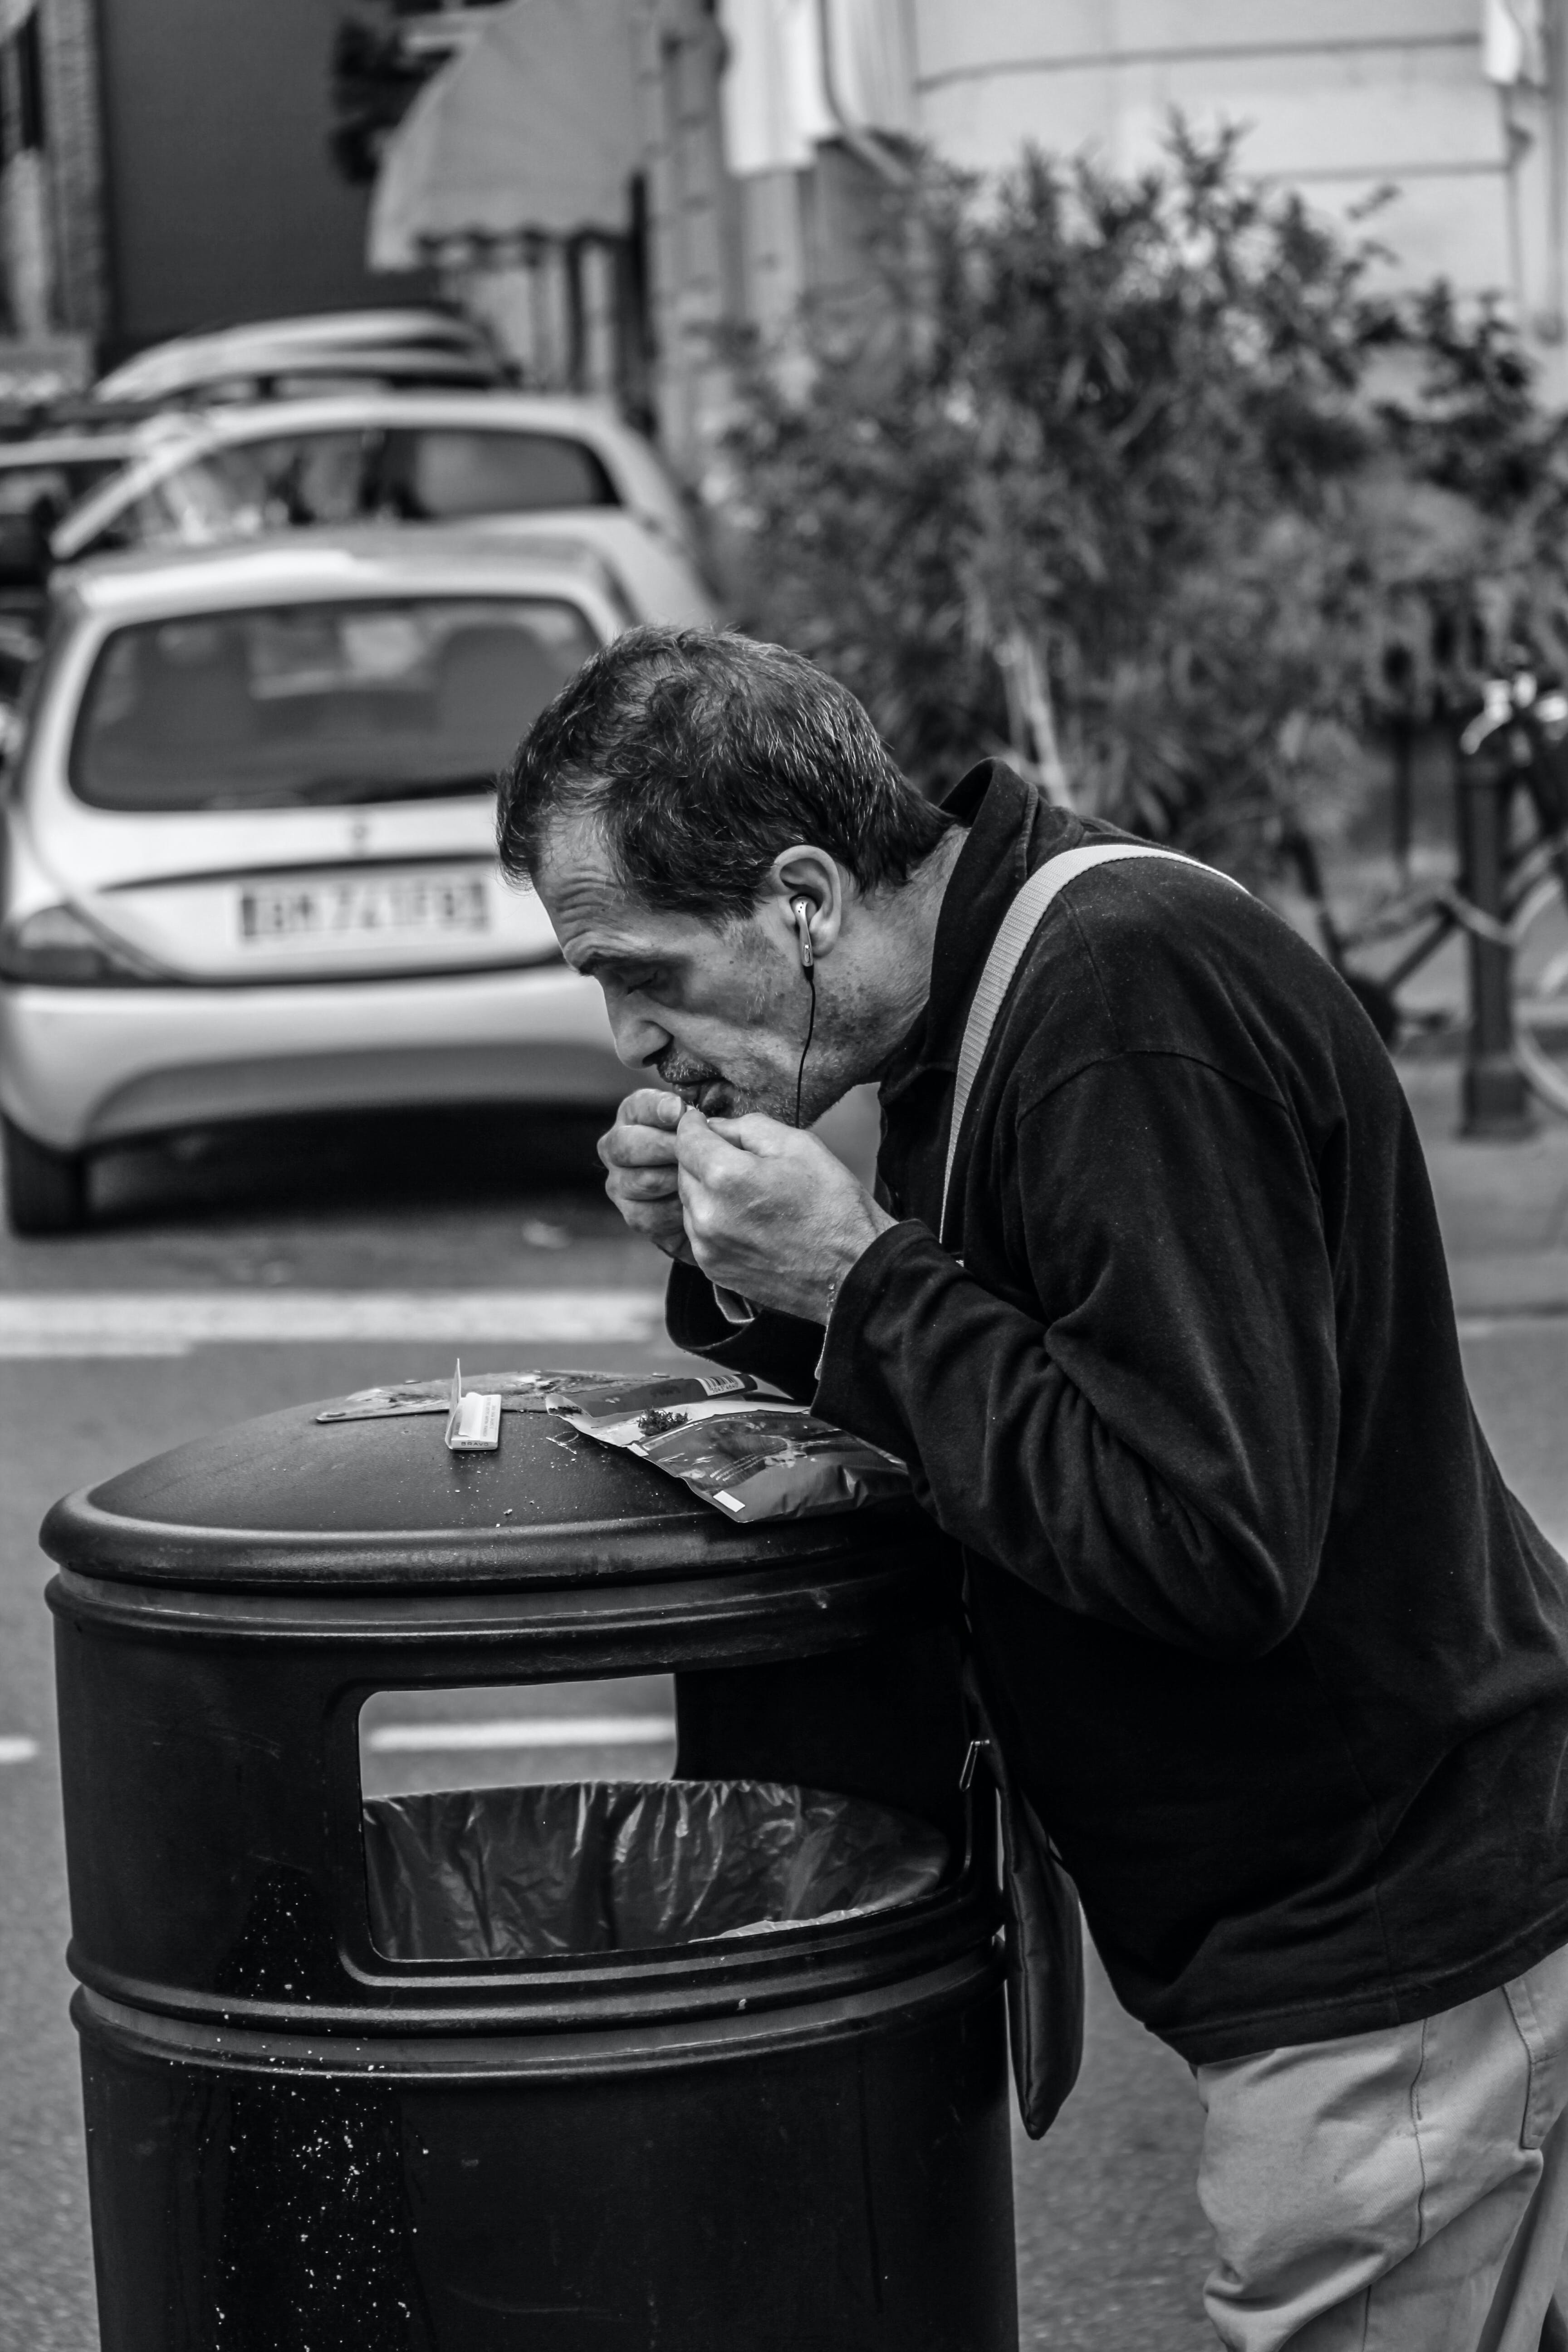 Grayscale Photography of Man Leaning on Black Trash Bin